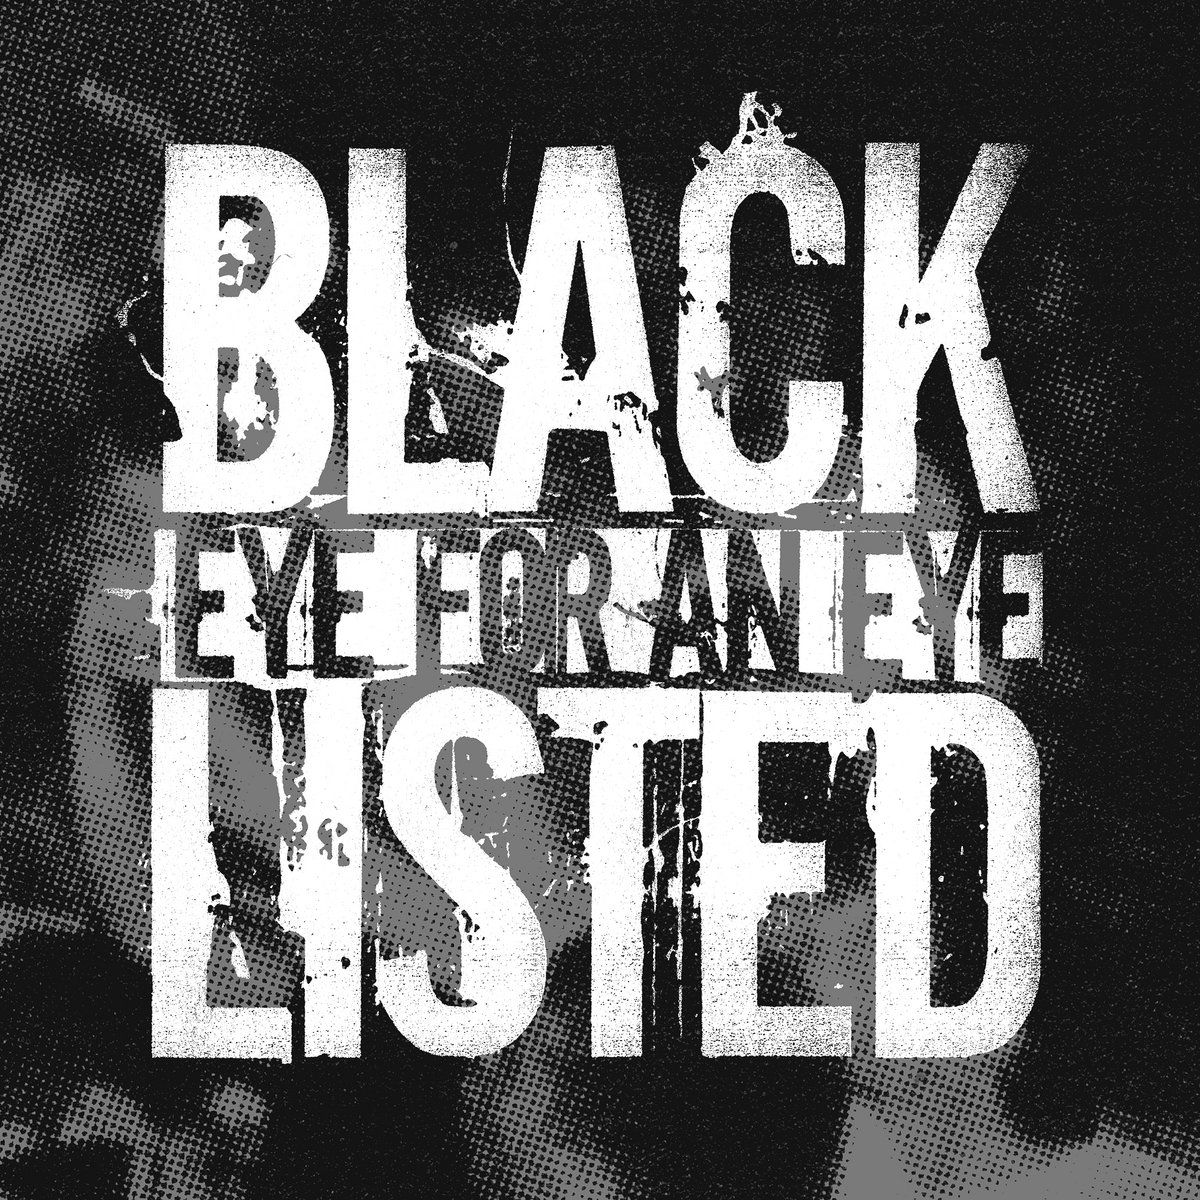 Blacklisted - Eye For An Eye 7